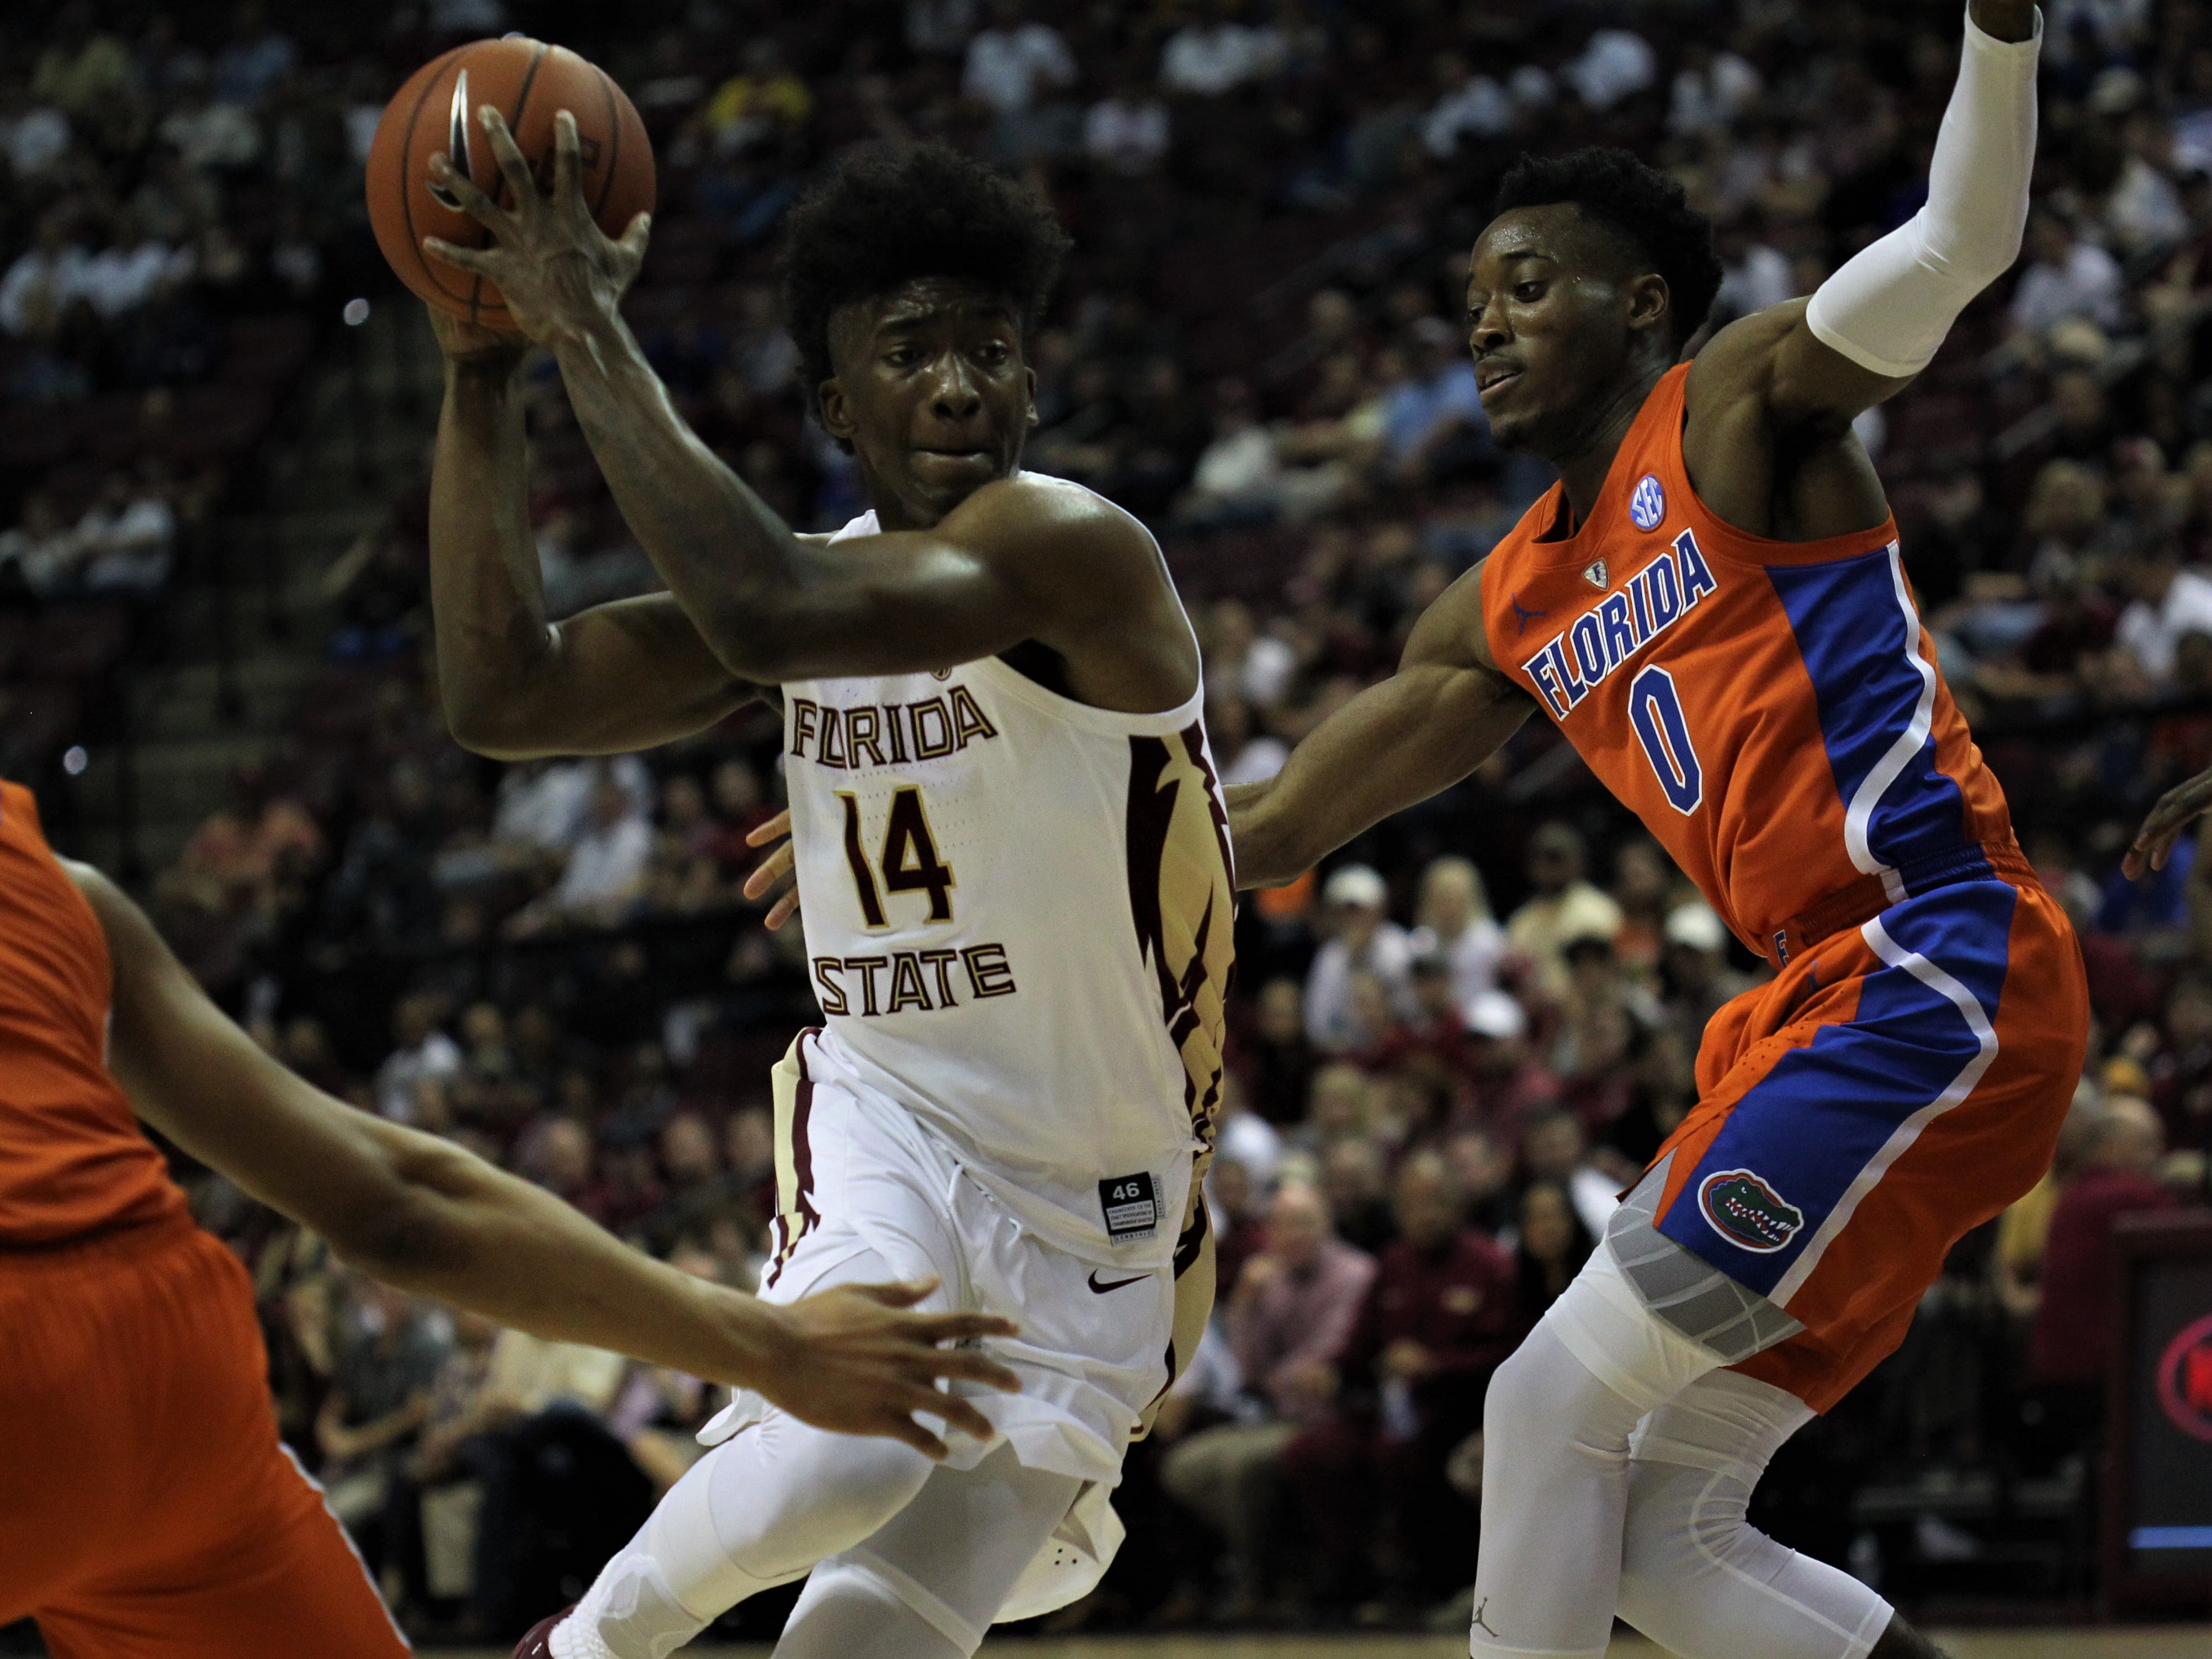 Florida State's Terance Mann drives against Florida's Mike Okauru during the Sunshine Showdown game Tuesday at the Tucker Civic Center.